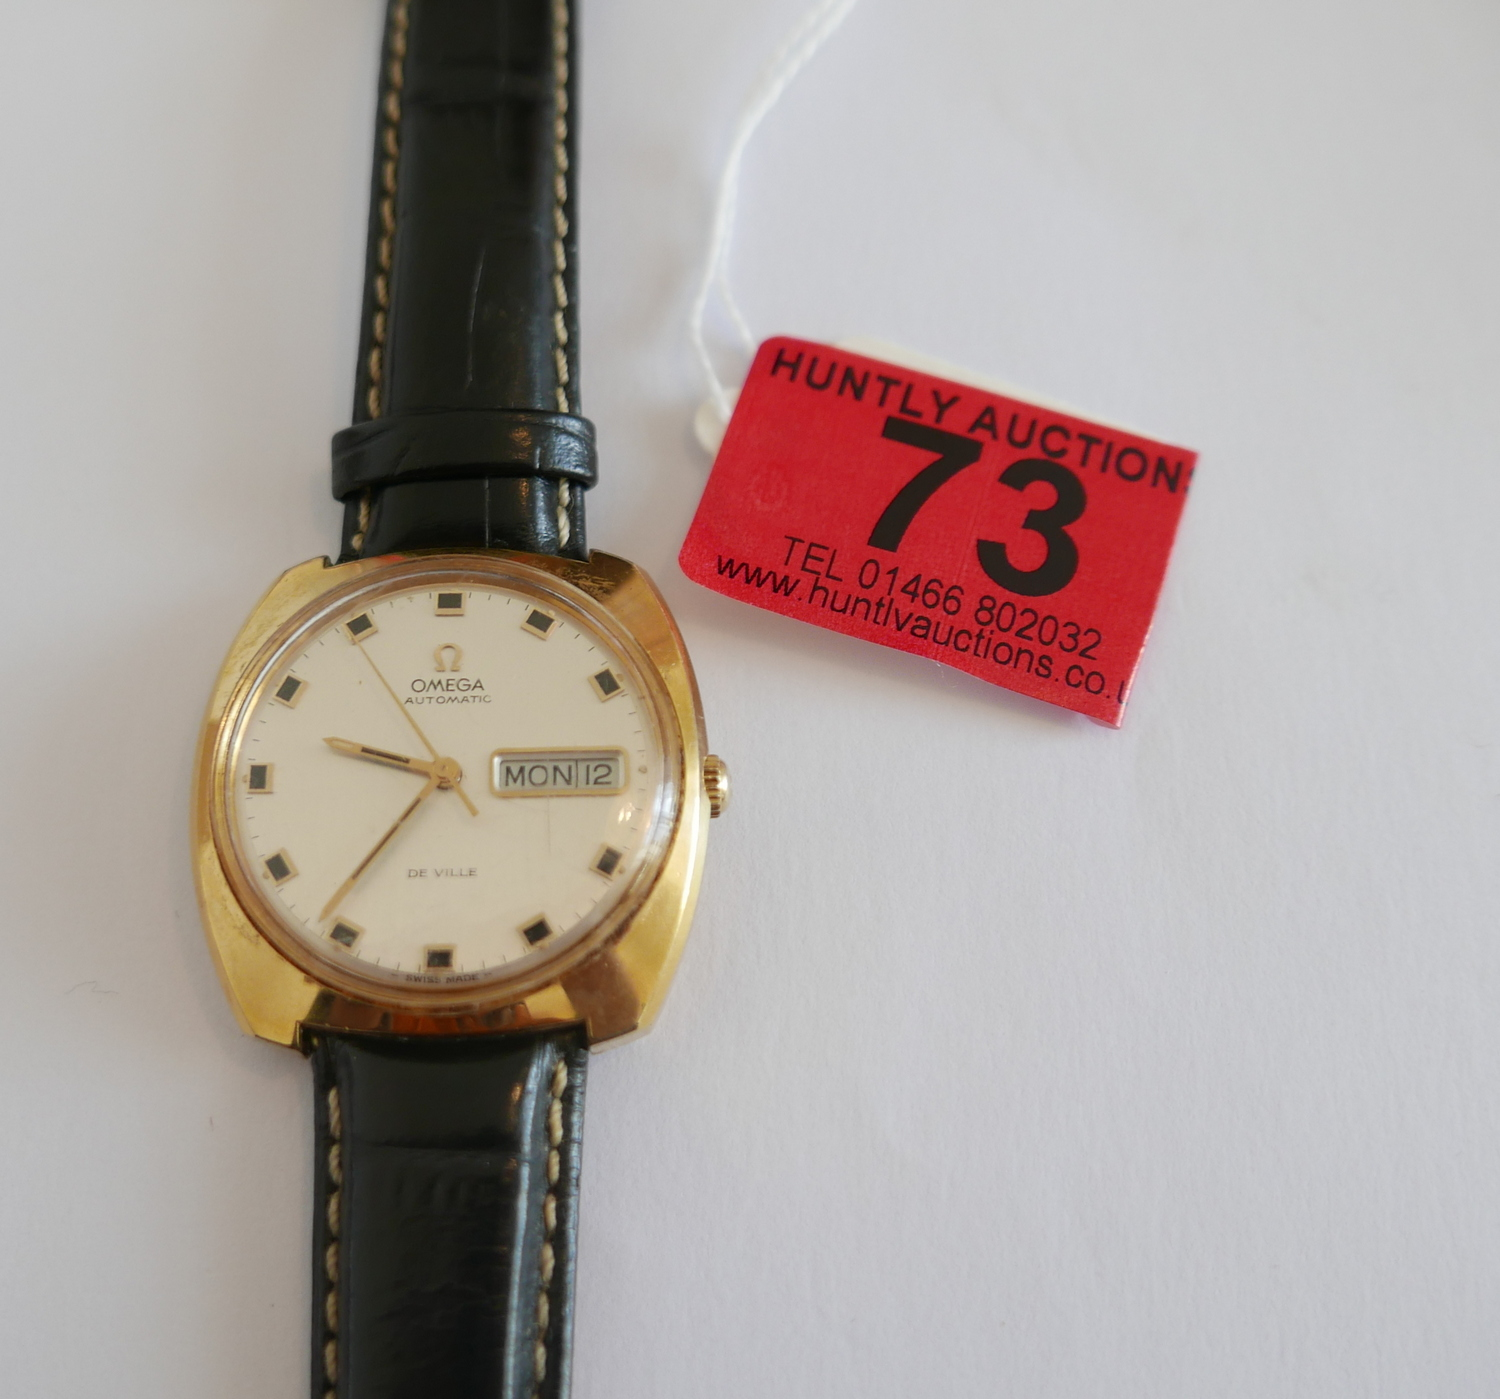 Vintage Omega Automatic Gold Plated De Ville Gents Wristwatch.